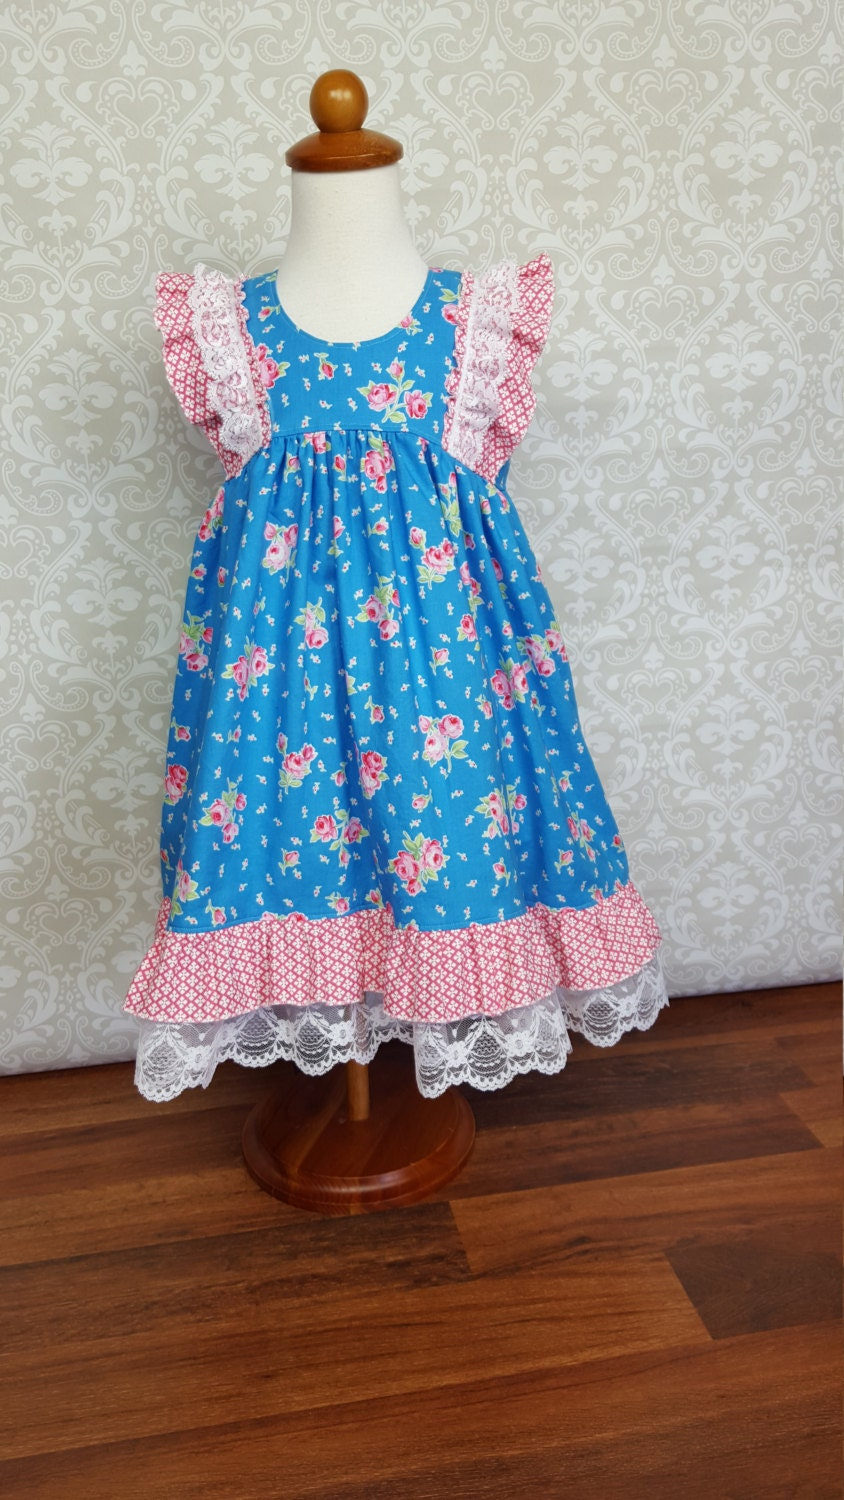 Easter Dress Girls toddler dress sizes 3 by AMDesignsBoutique